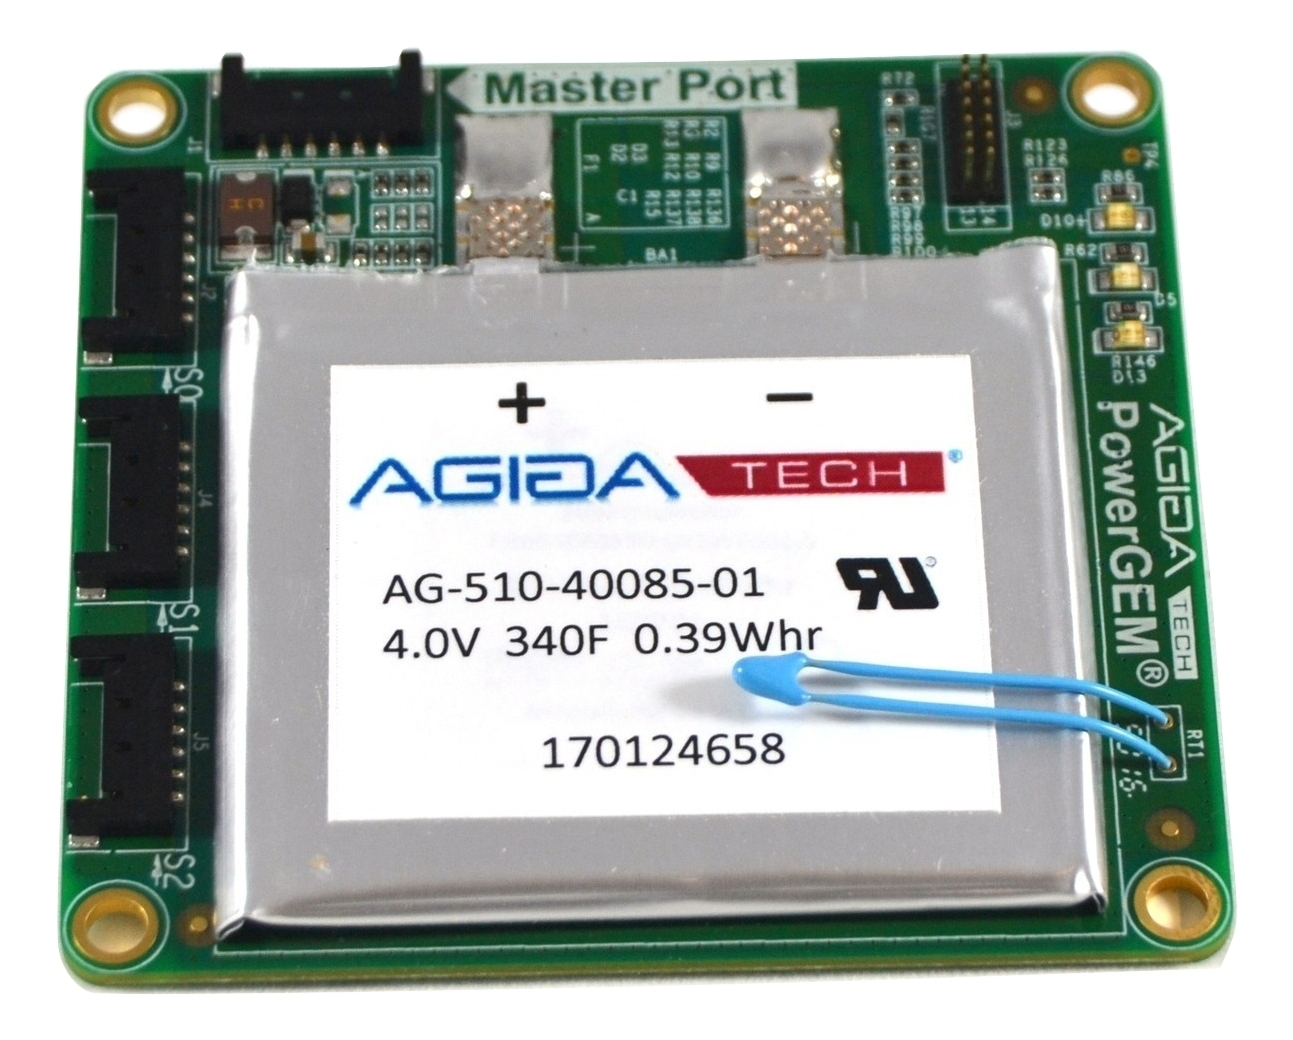 Agiga Tech Introduces New Family Of Powergem Energy Modules For Structured Wiring Distribution Free Download Nvdimm Backup Power Business Wire